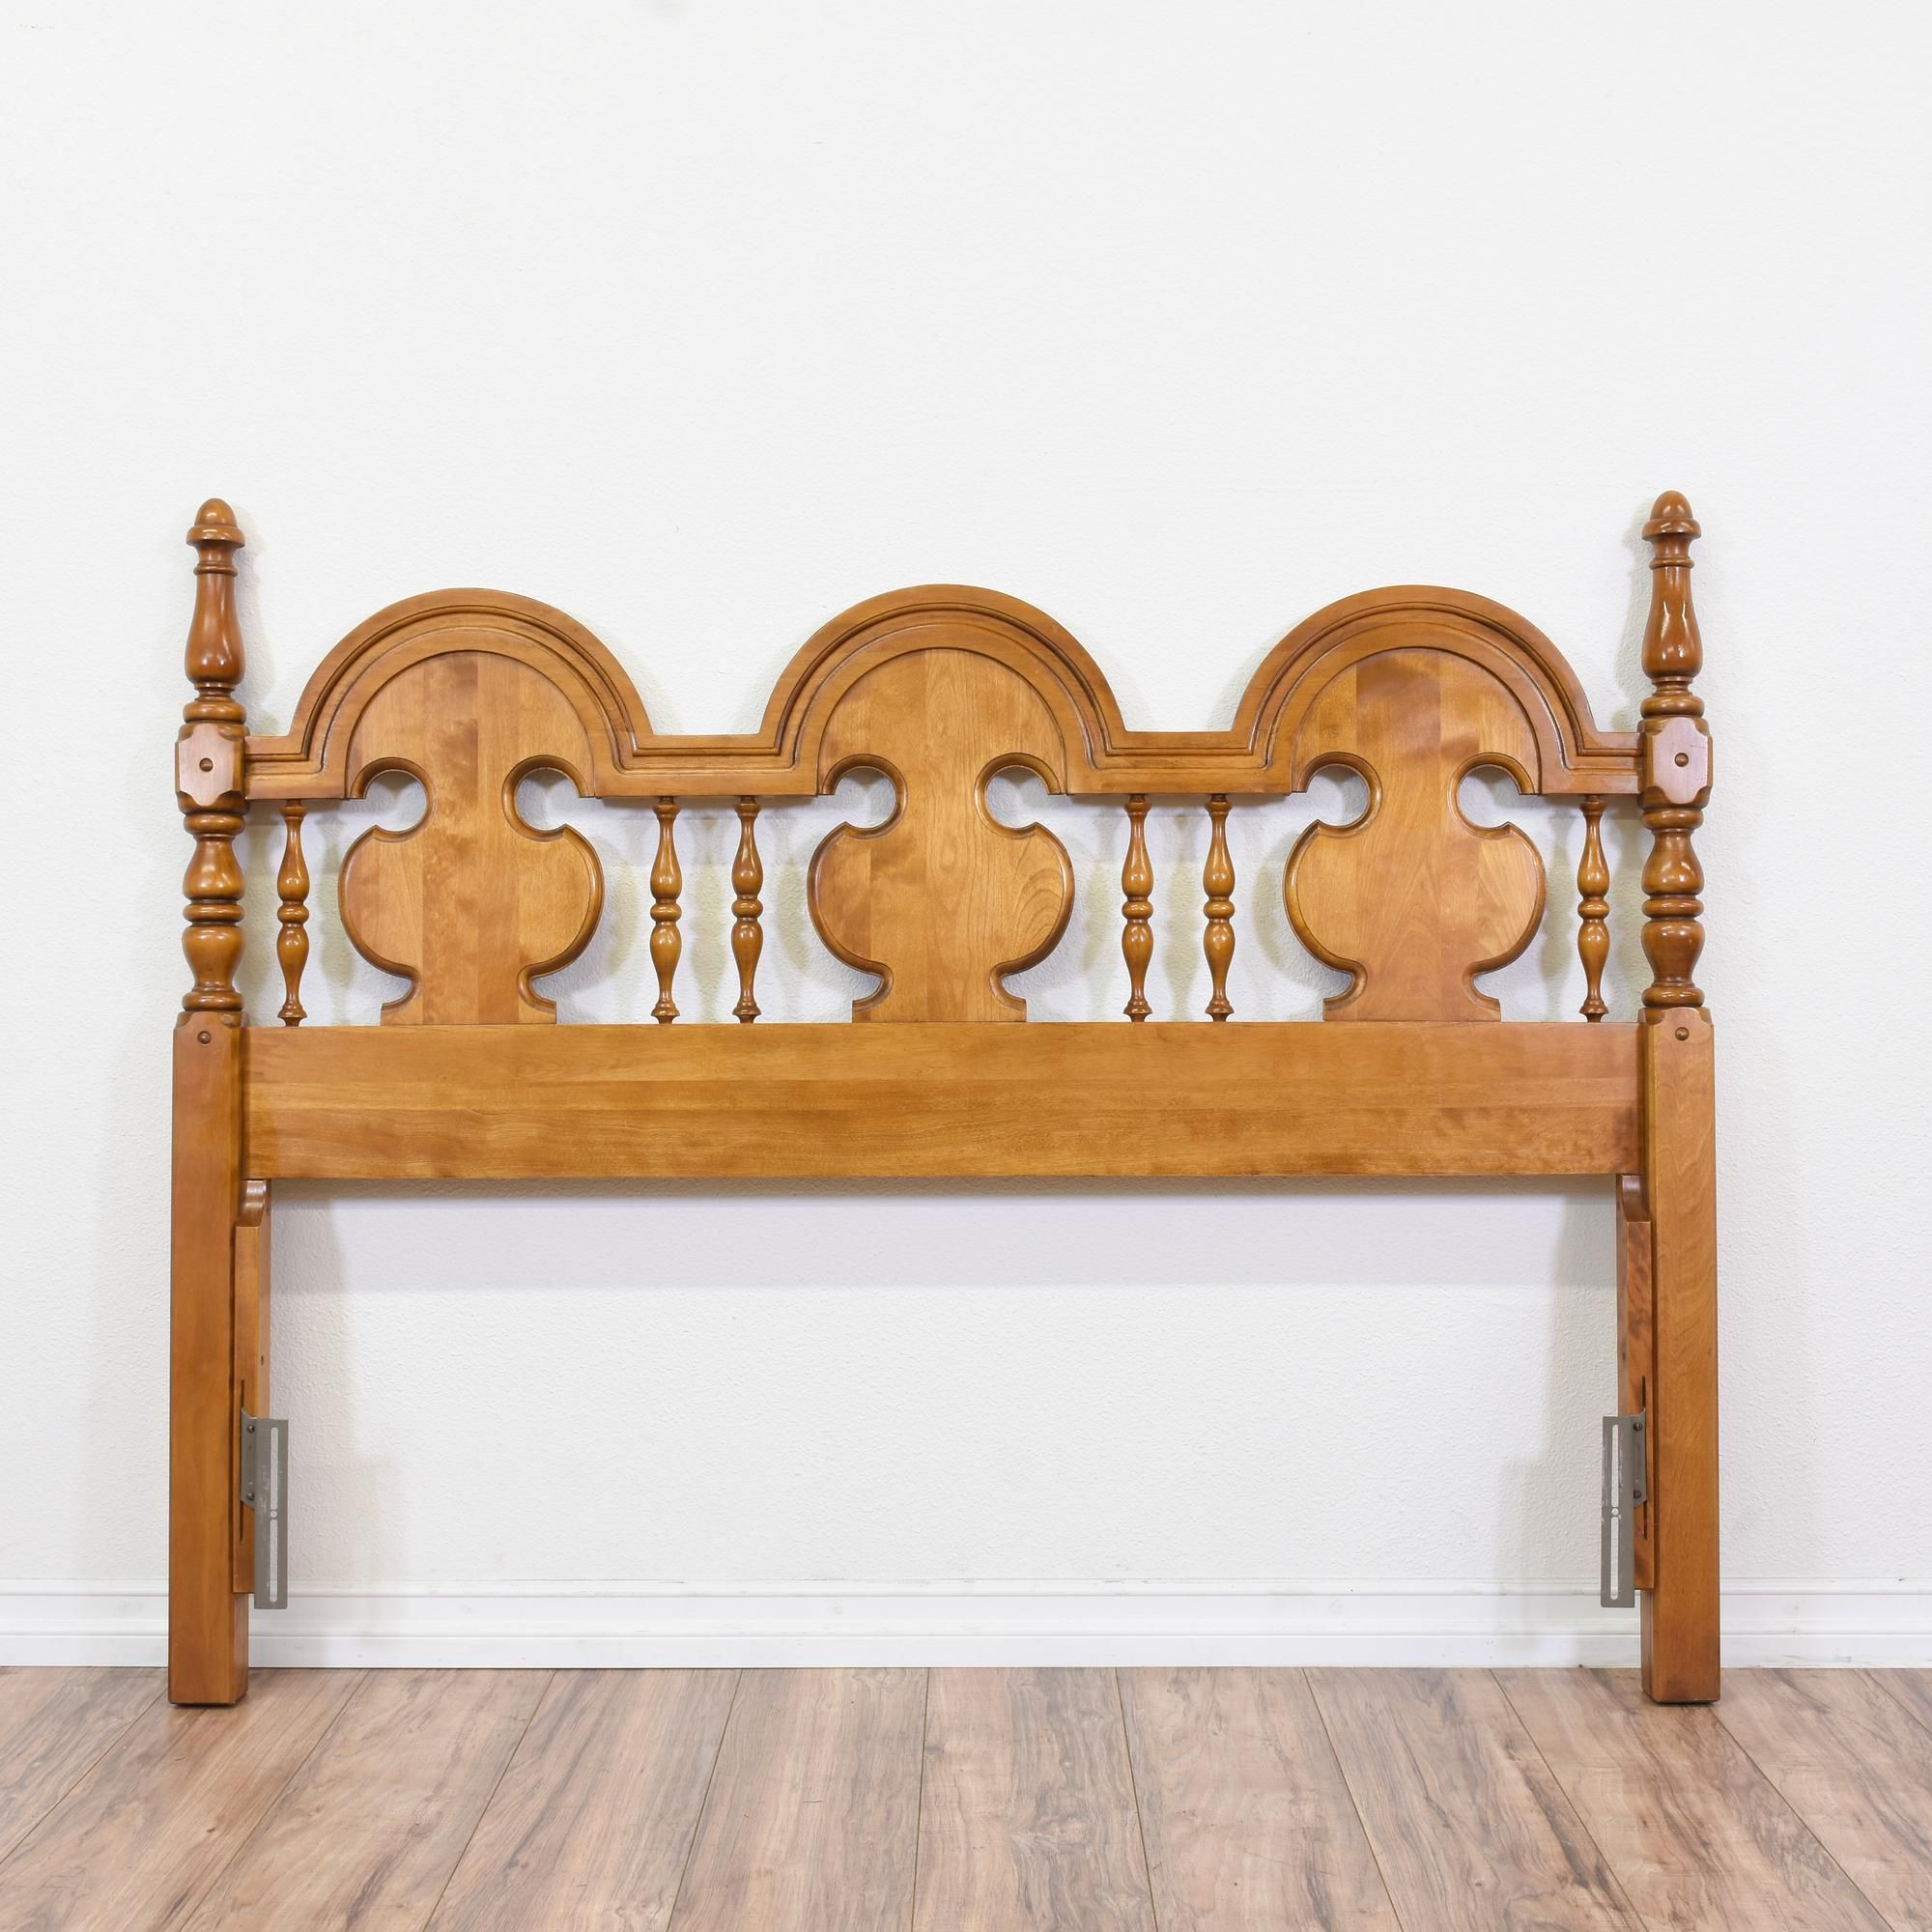 This country chic headboard is featured in a solid wood